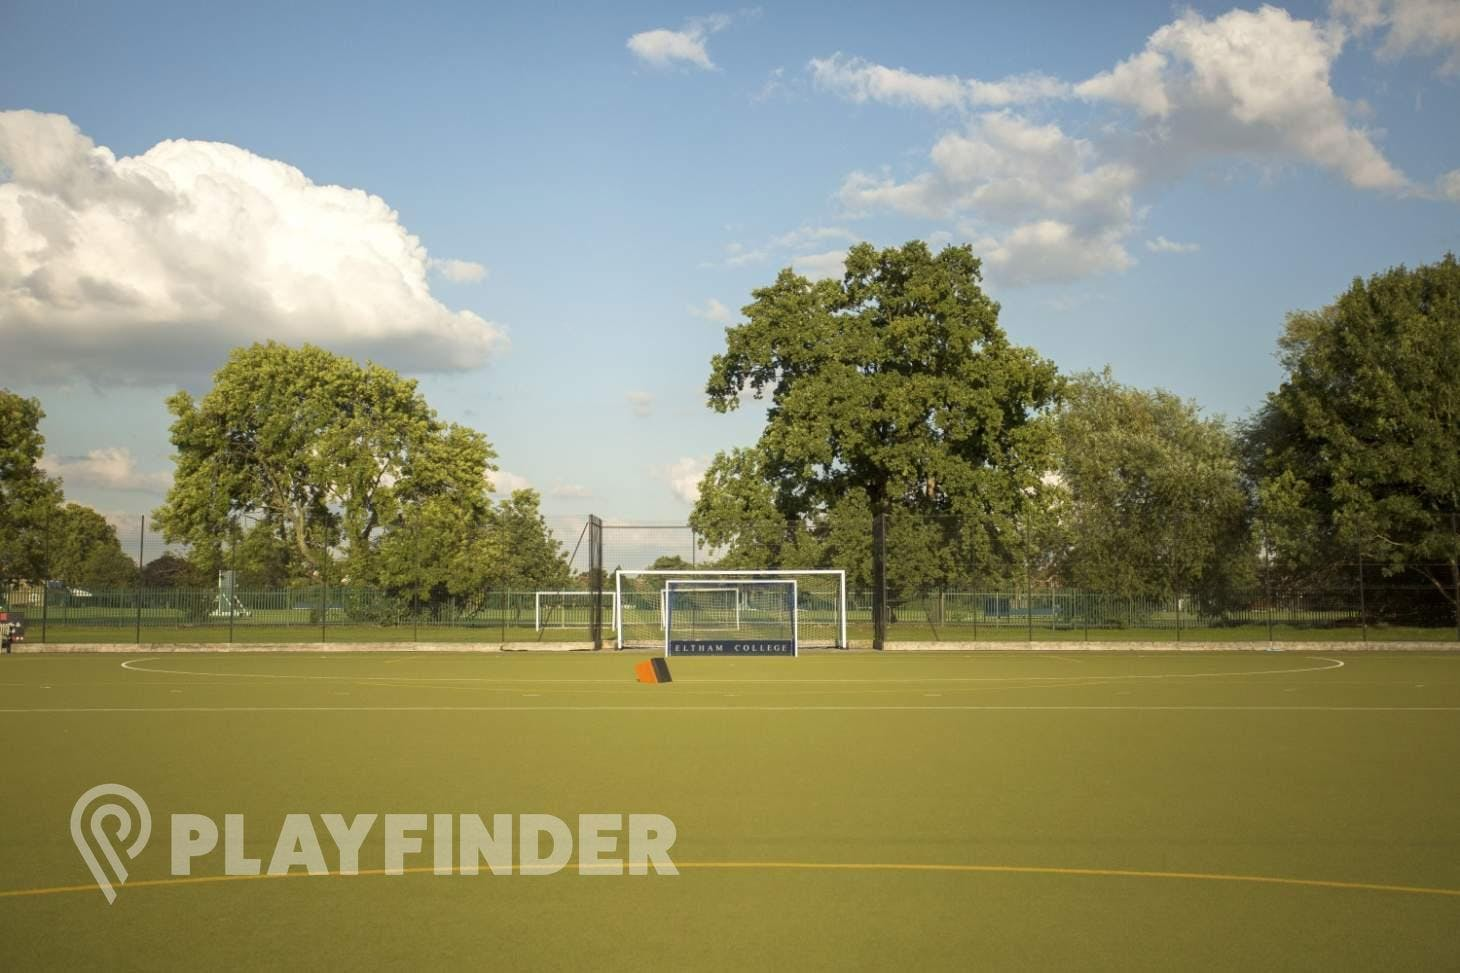 Eric Liddell Sports Centre - Outdoor 5 a side | Astroturf football pitch